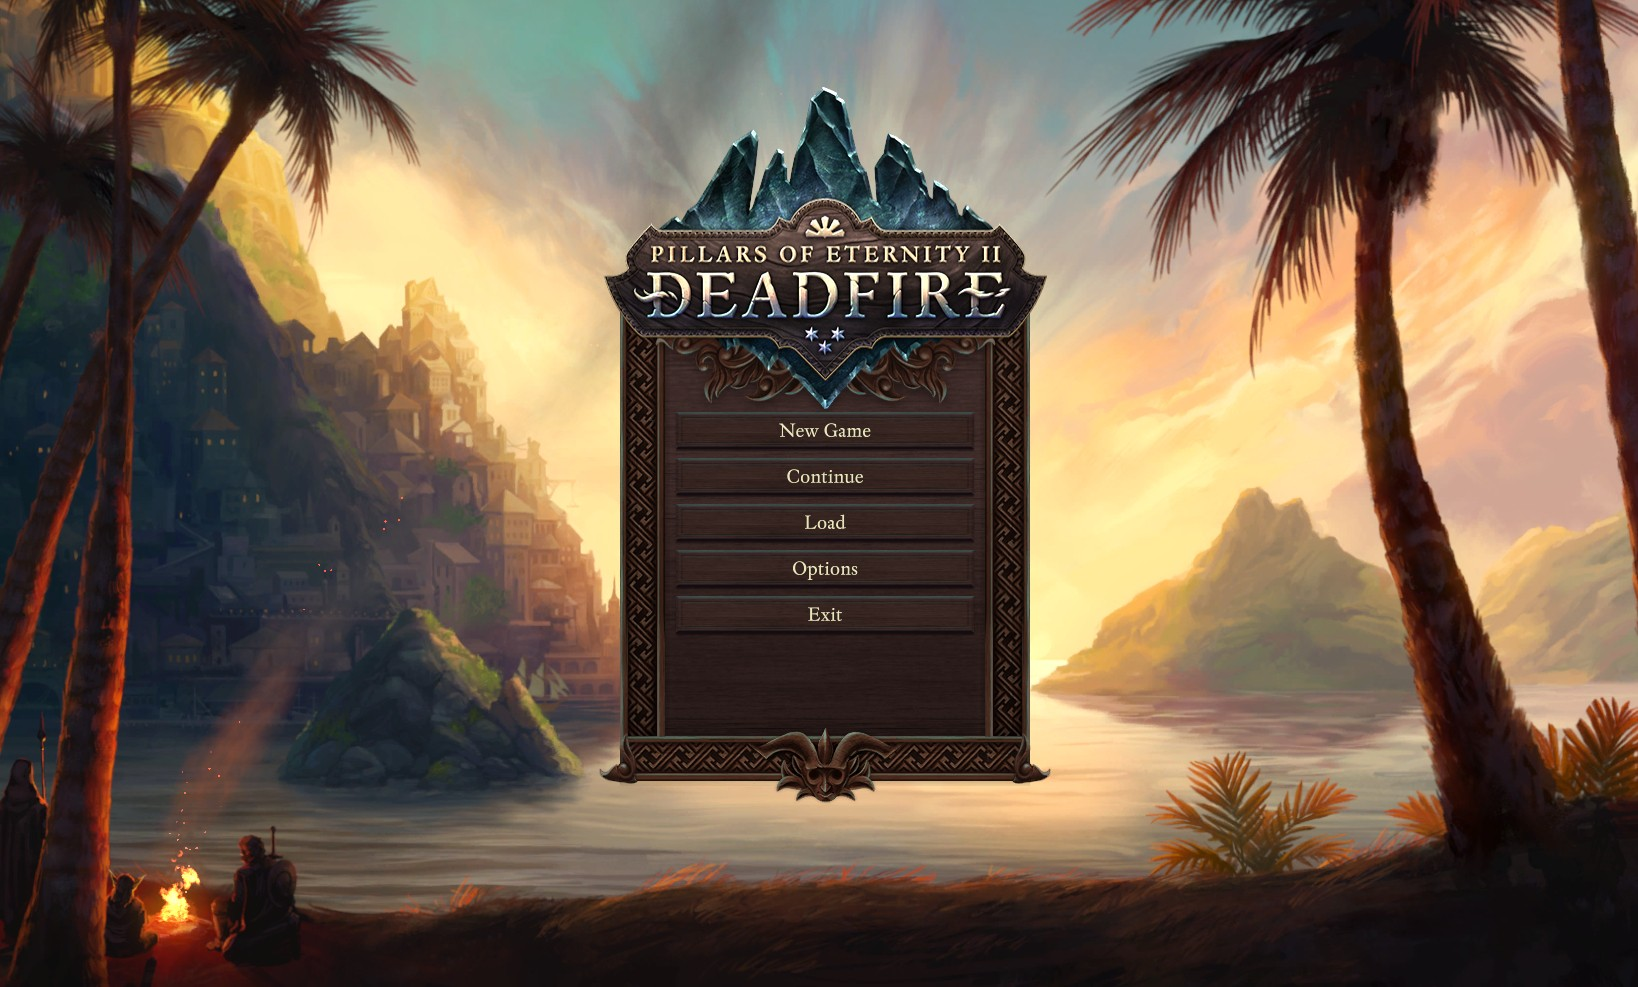 Pillars of Eternity II: Deadfire Preview – Ships, Pirates